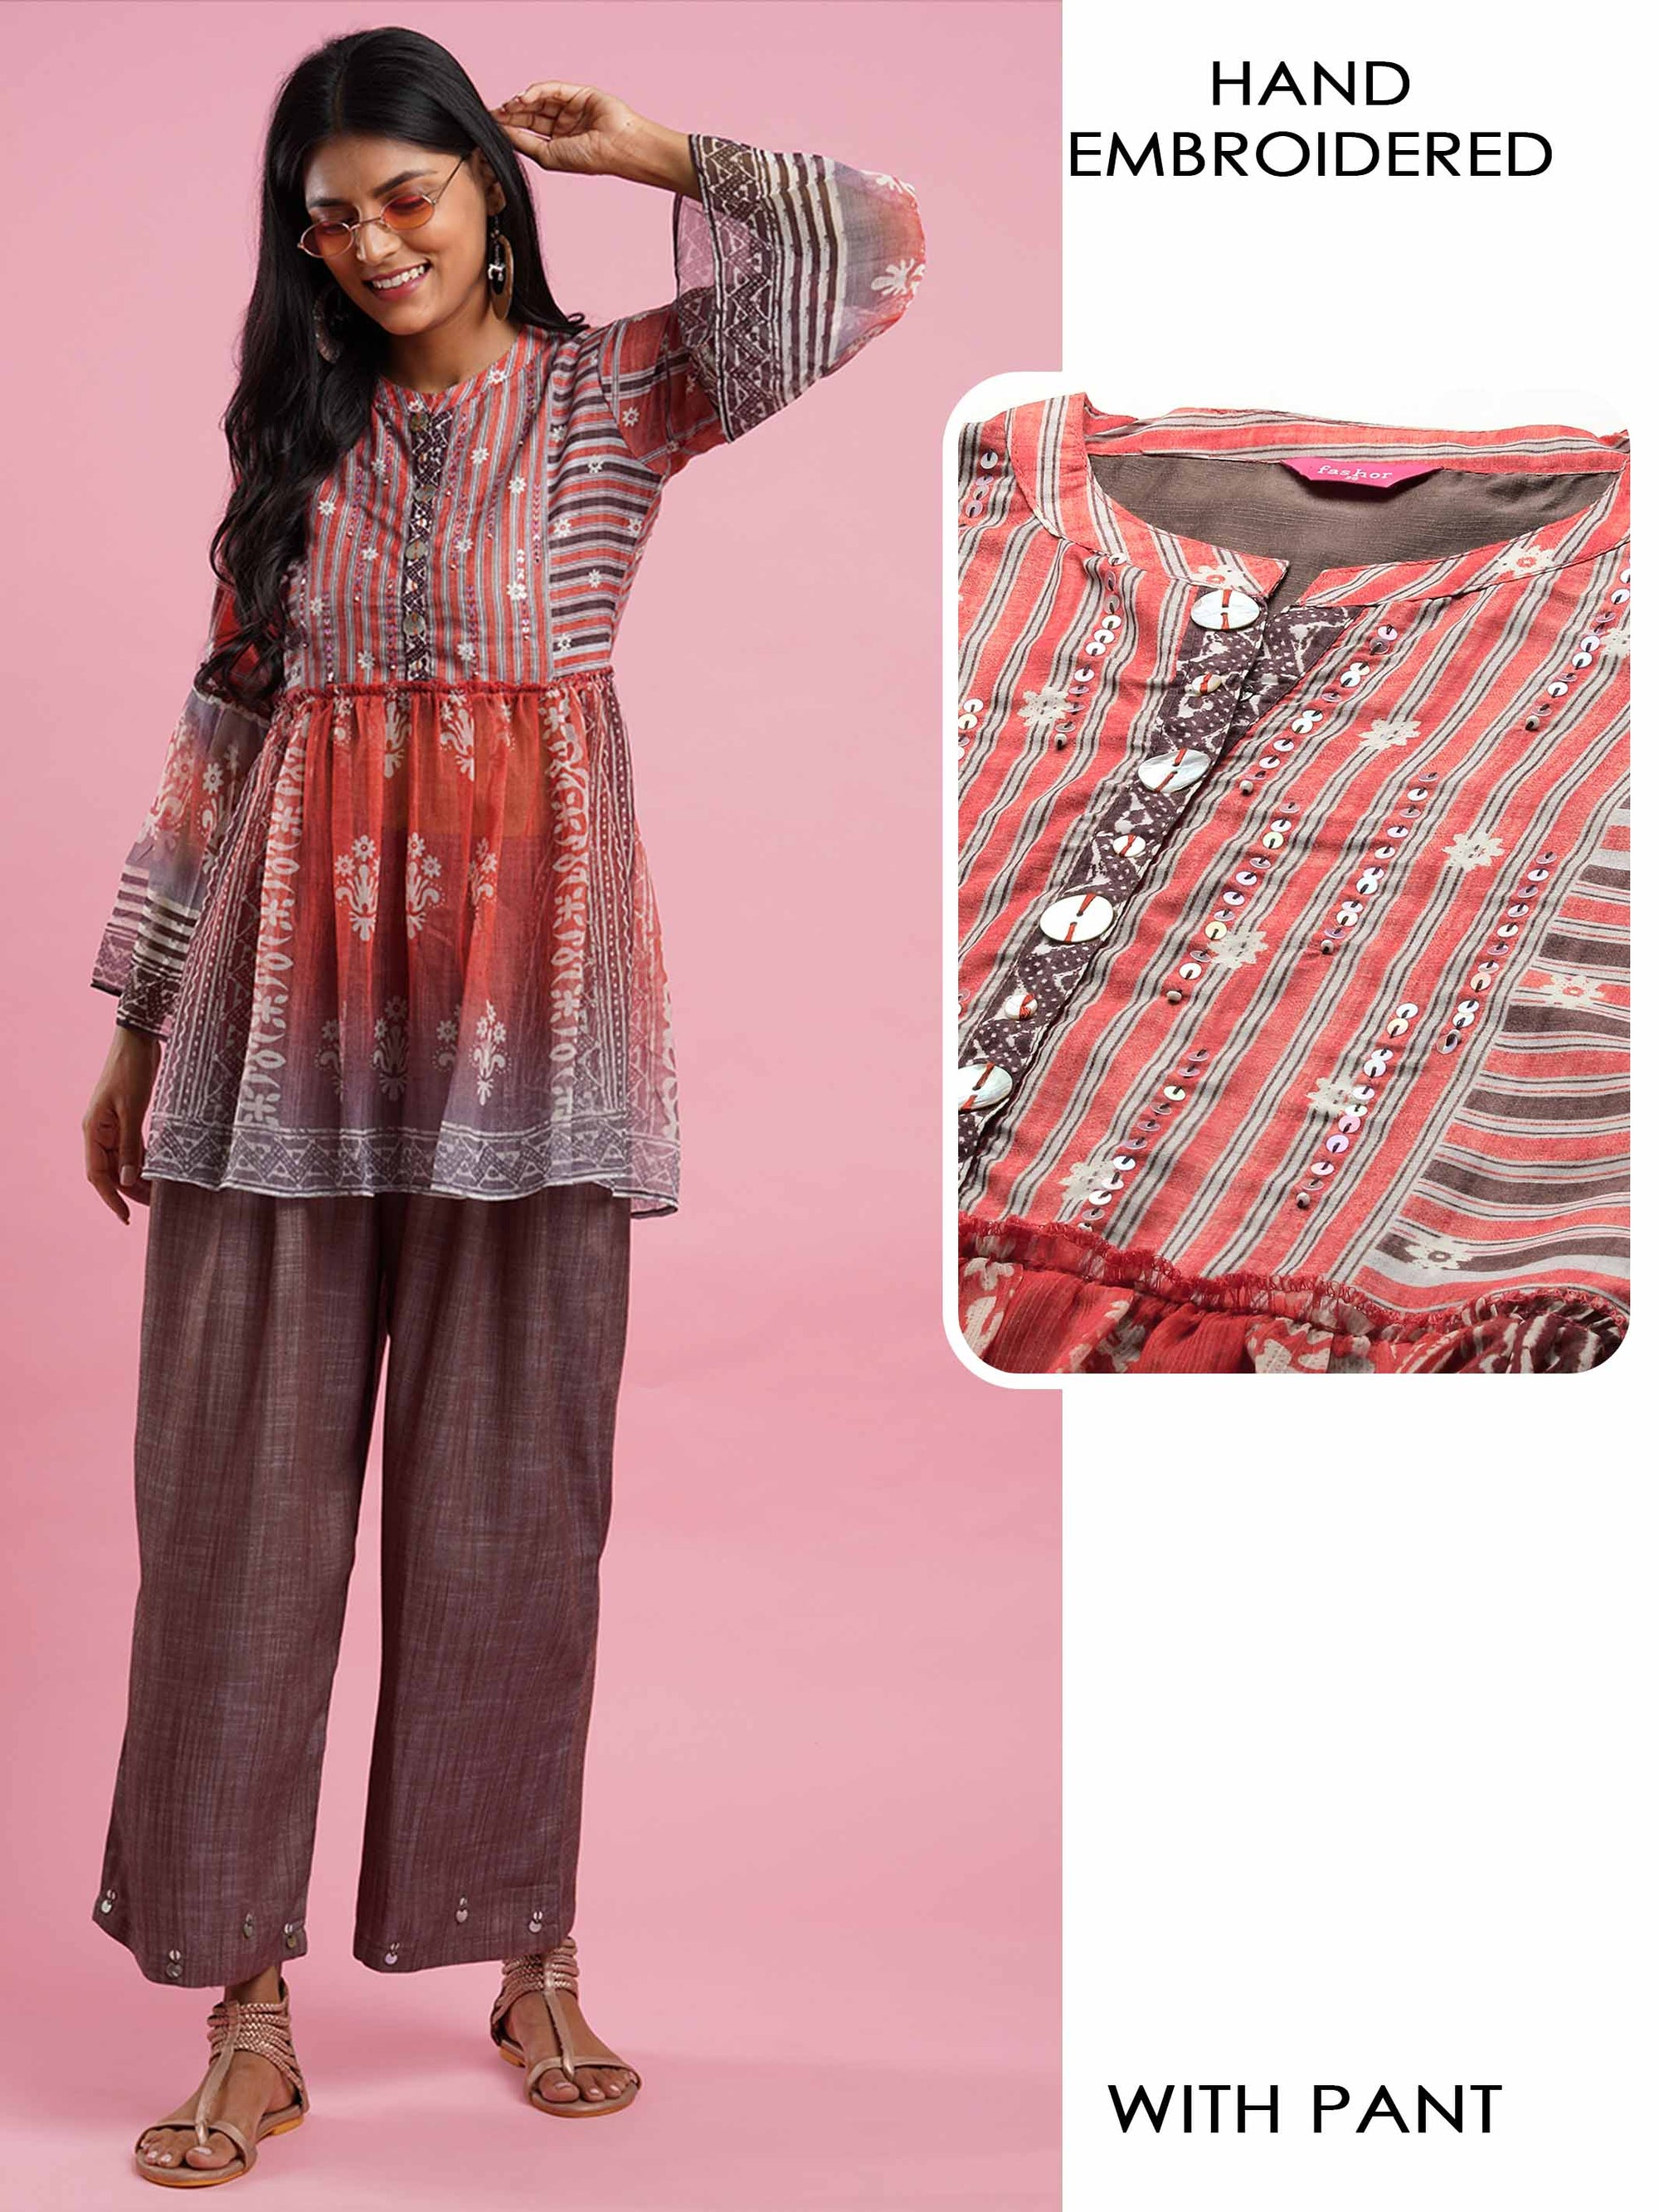 Ethnic Printed & Hand Embroidered Peplum Top with Textured Pant - Orange